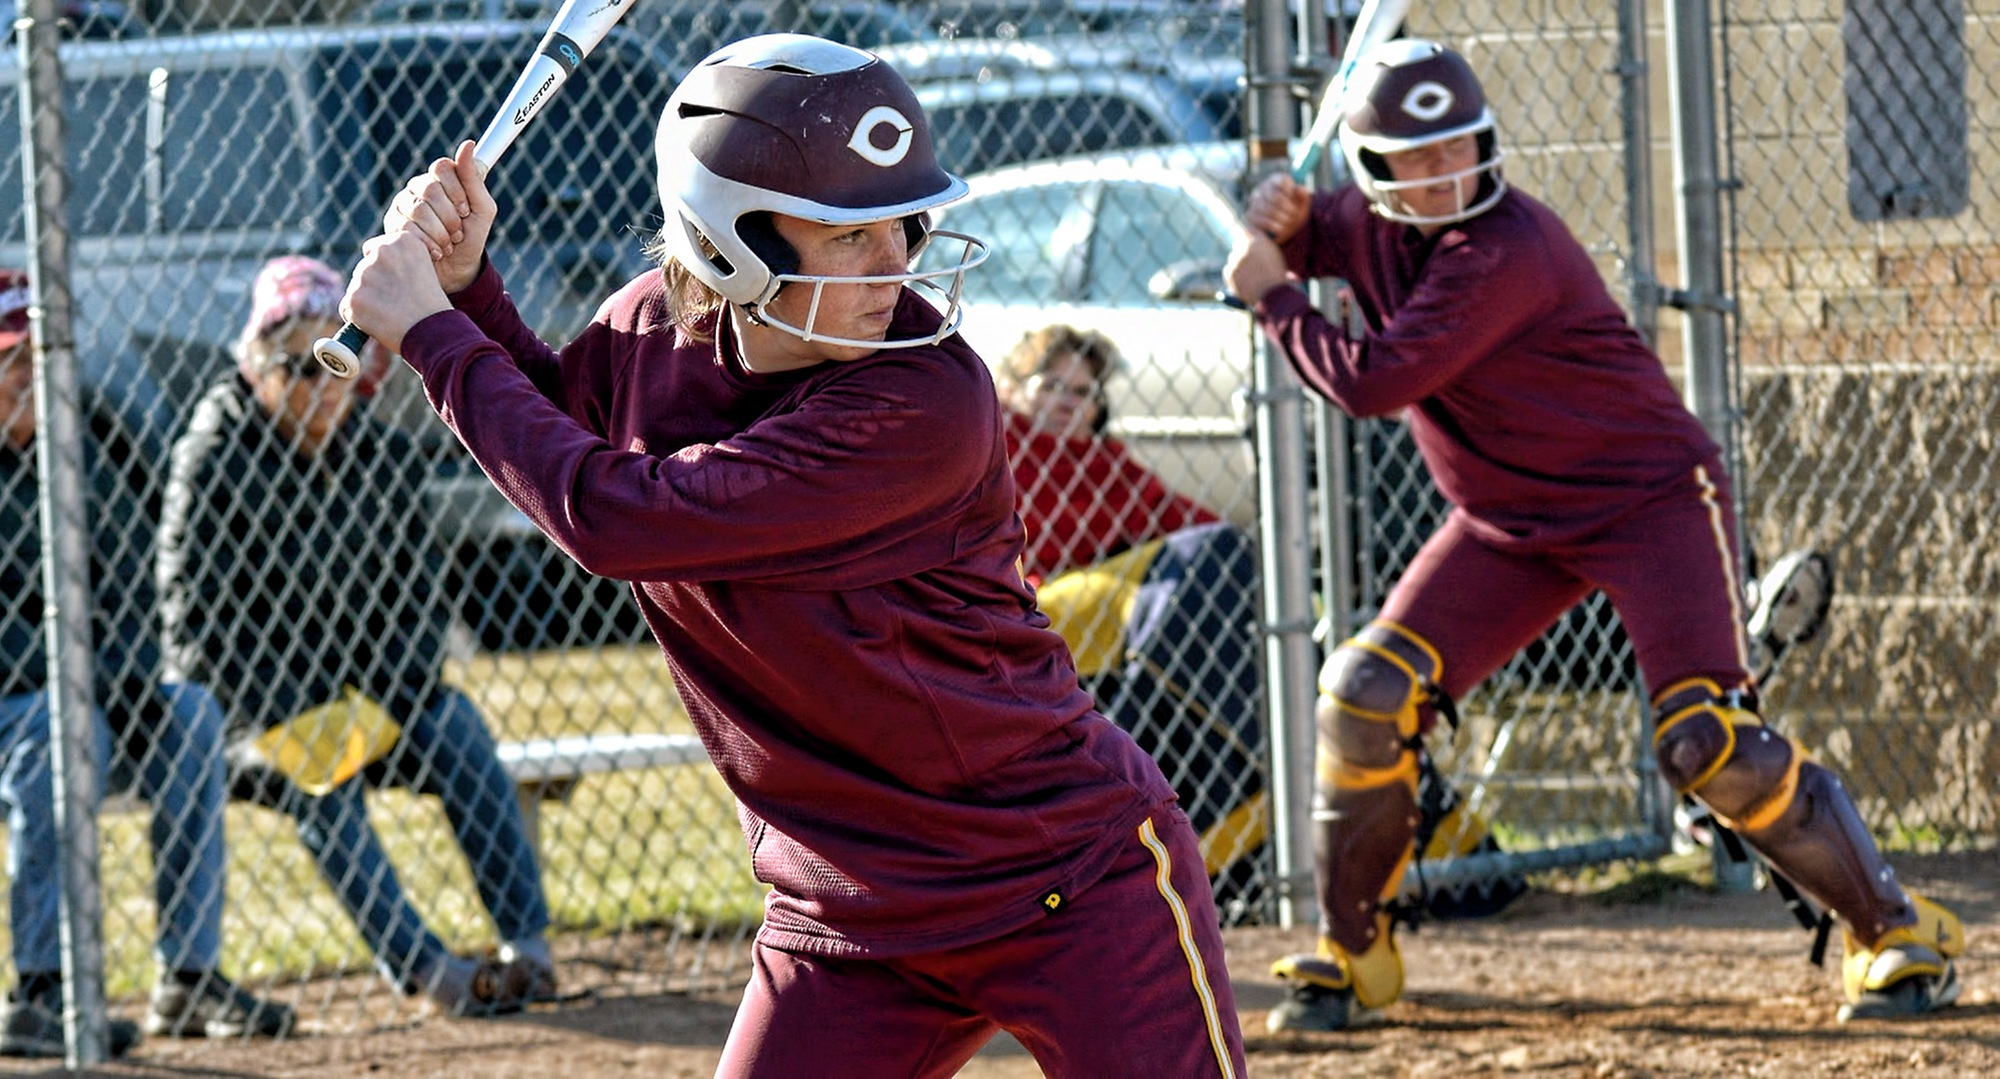 Freshman Megan Gavin had a solo home run in the first game at Carleton and had hits in both games of the Cobbers' DH with the Knights.